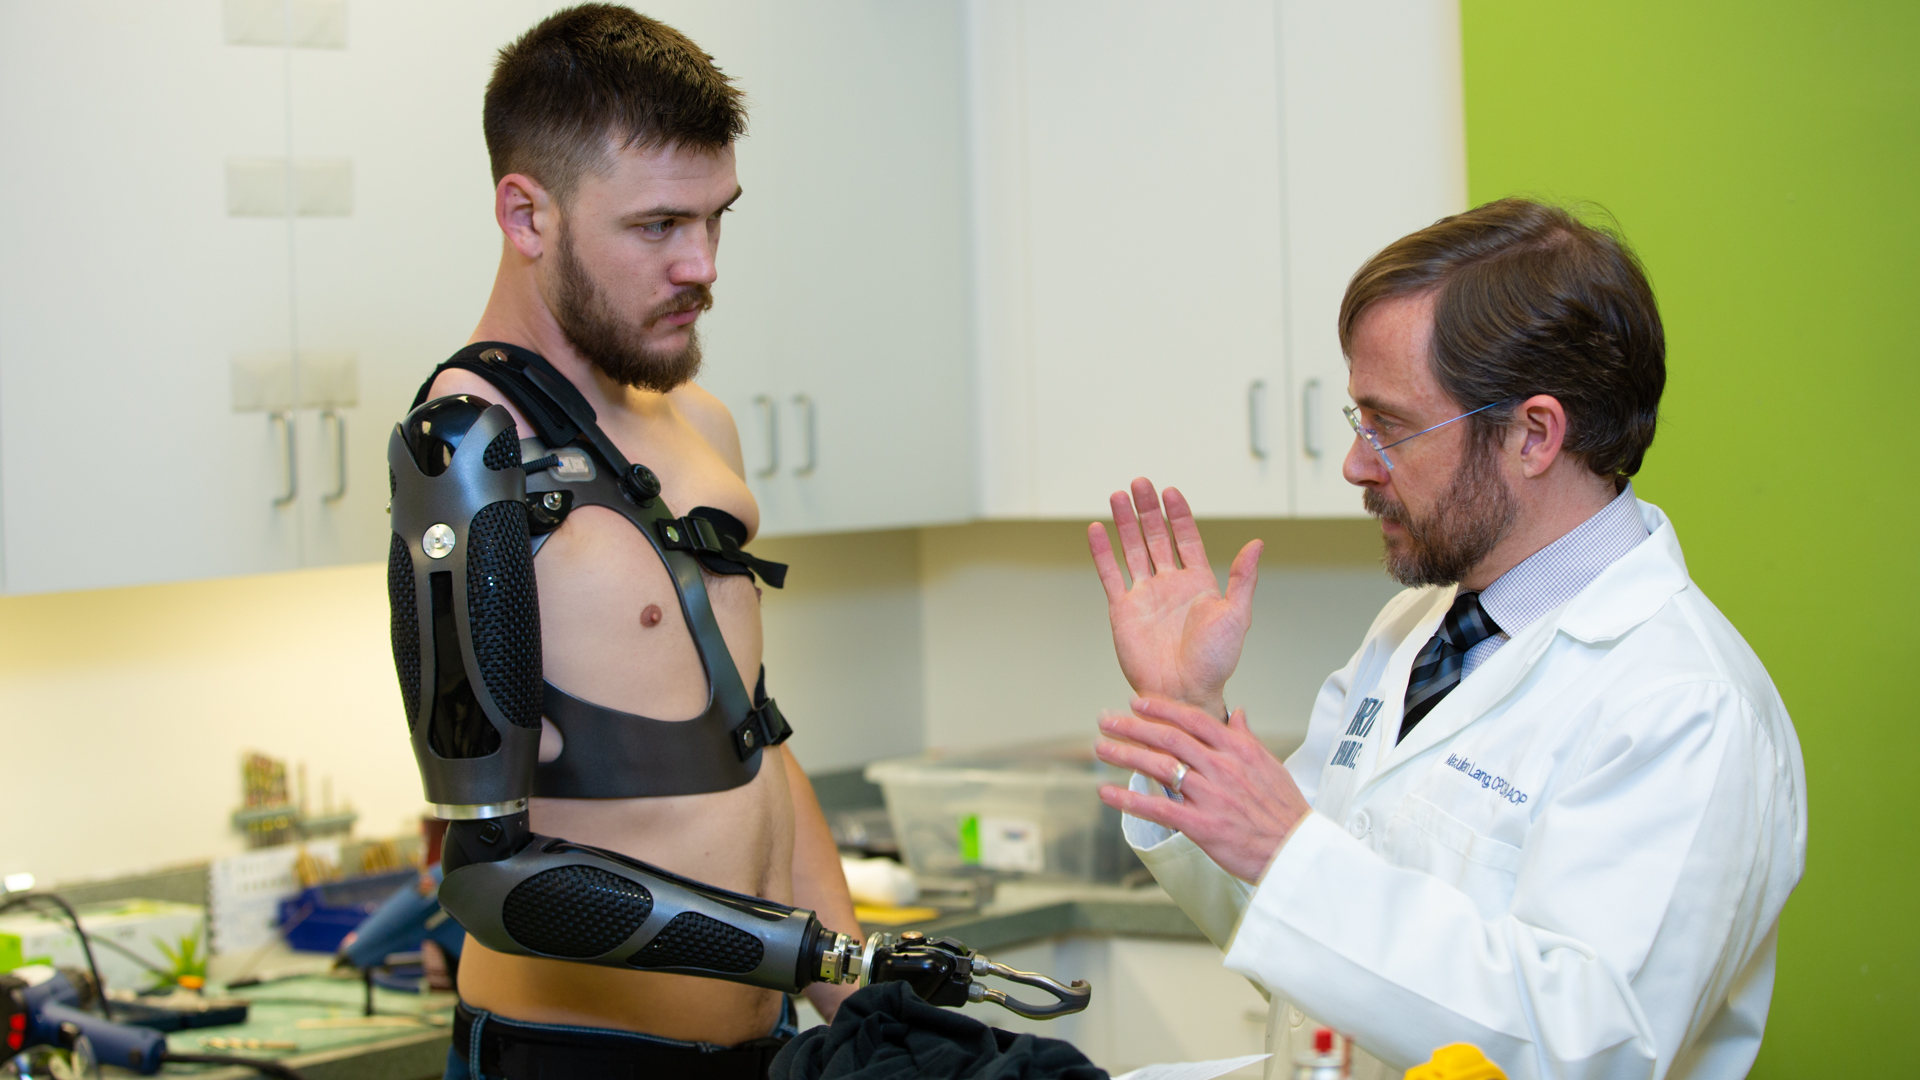 Prosthetist working with a shoulder level patient